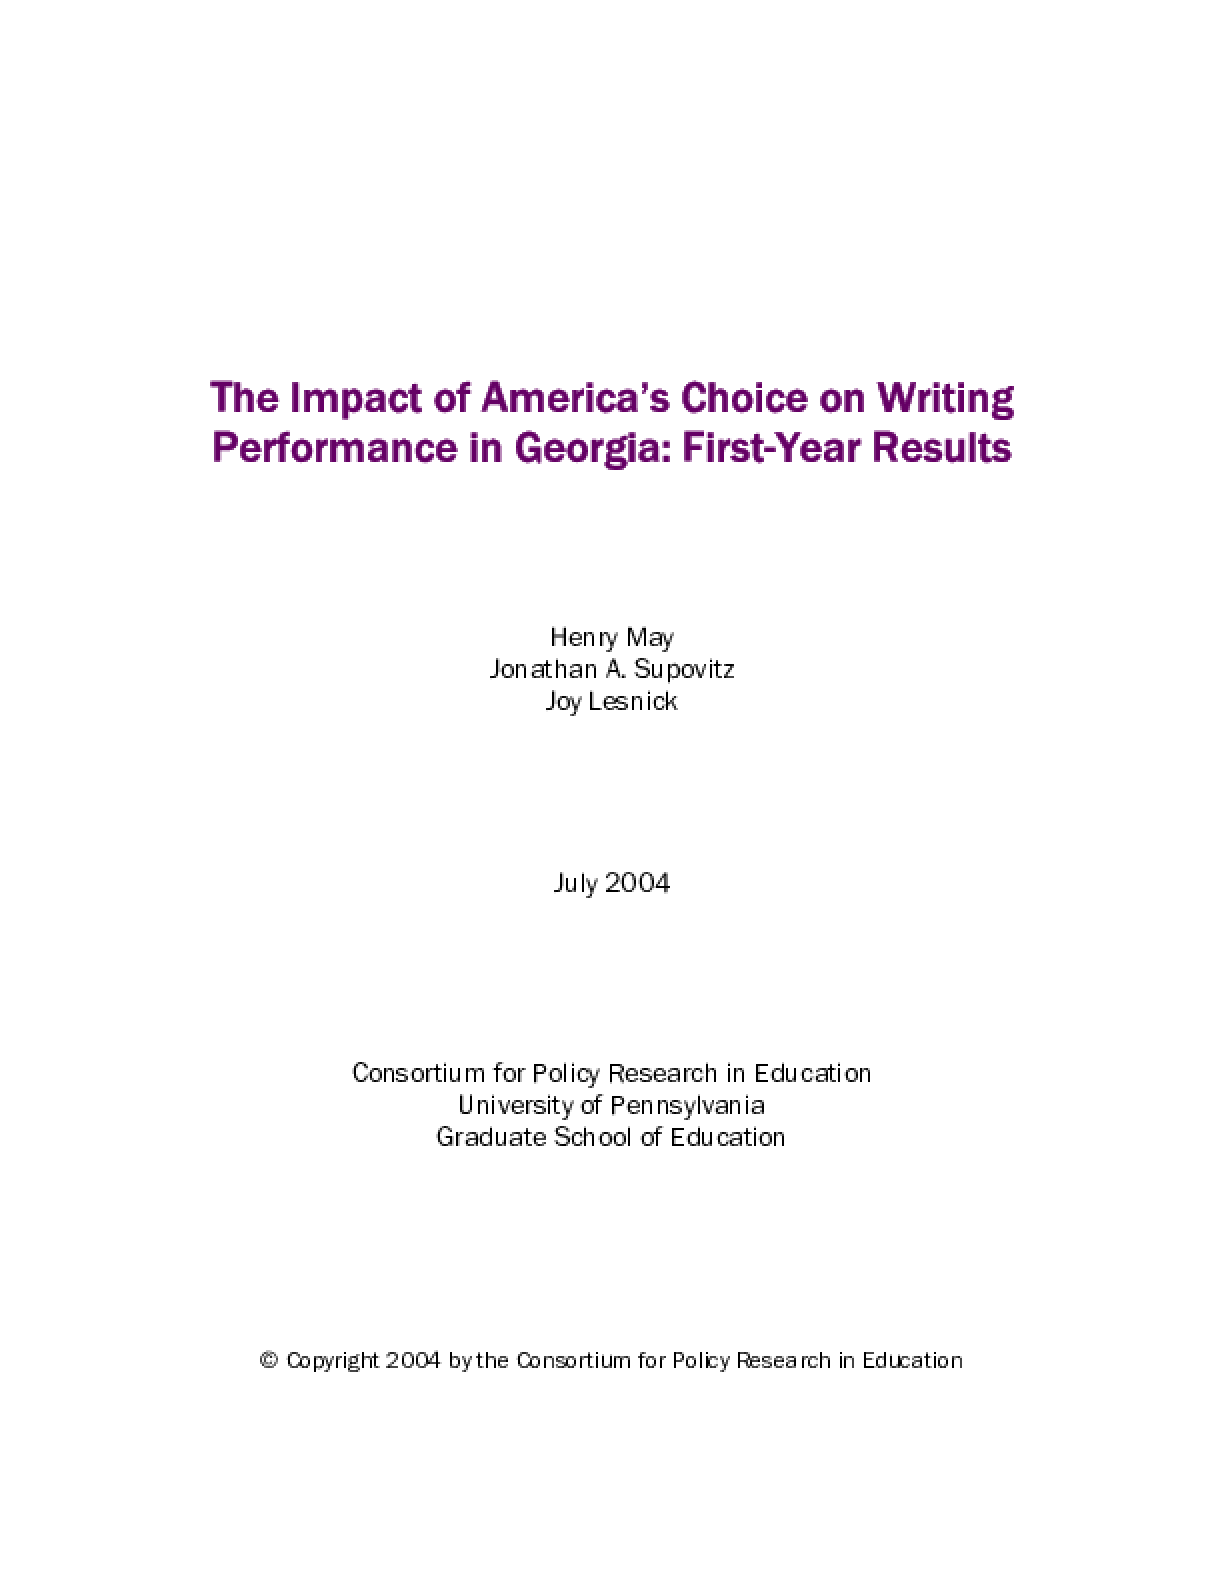 The Impact of America's Choice on Writing Performance in Georgia: First-Year Results